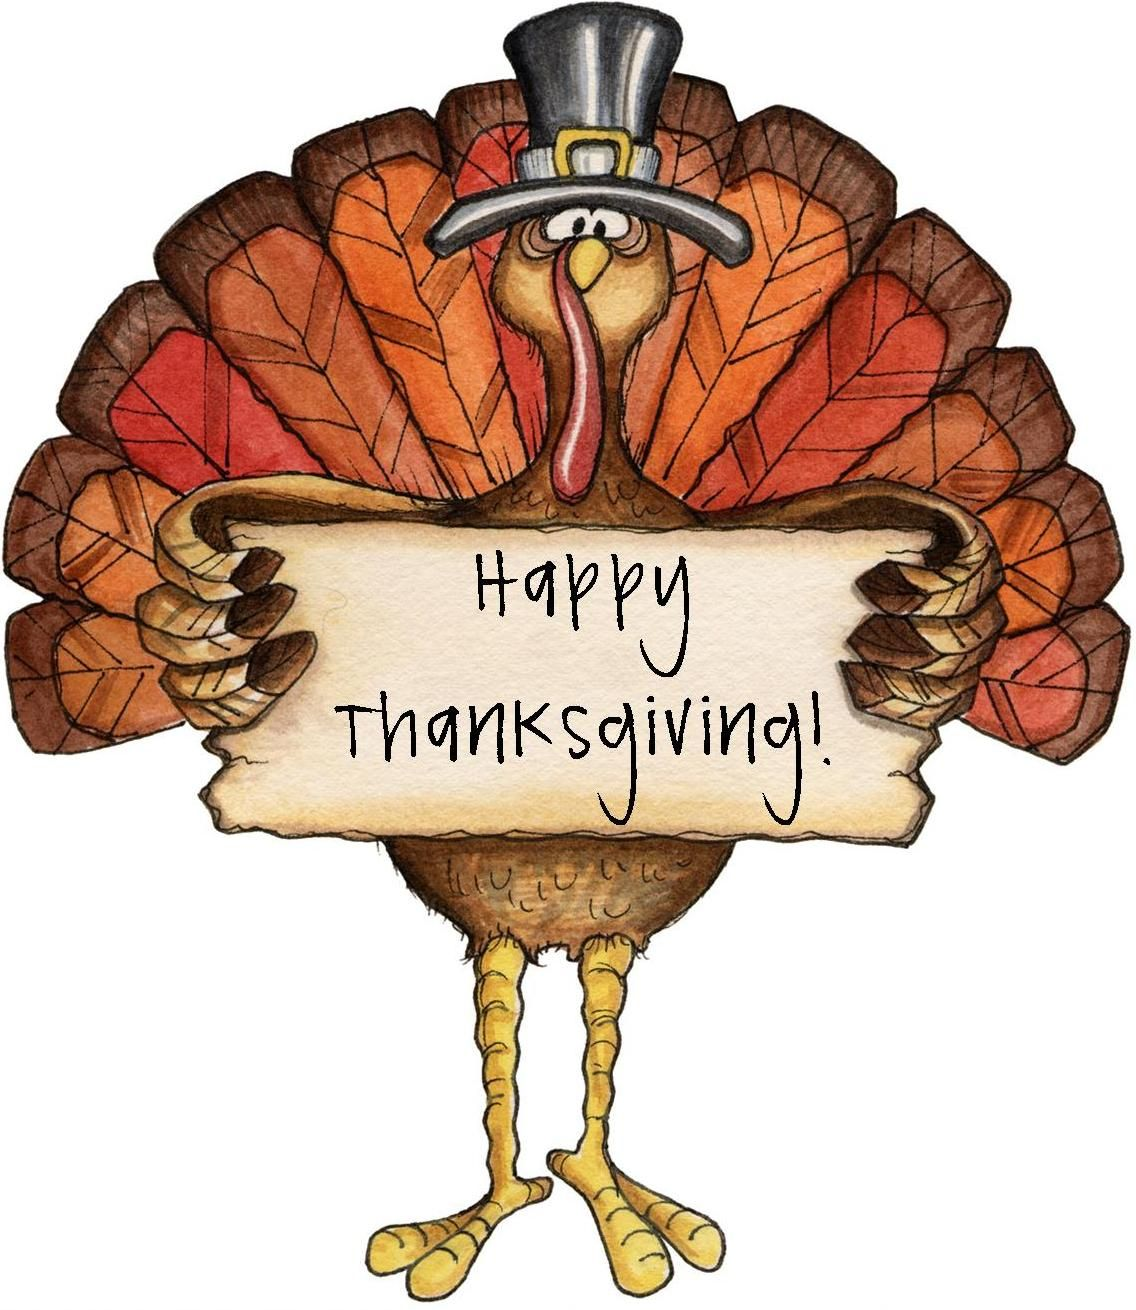 Funny Turkey Clip Art During this time of year, it is